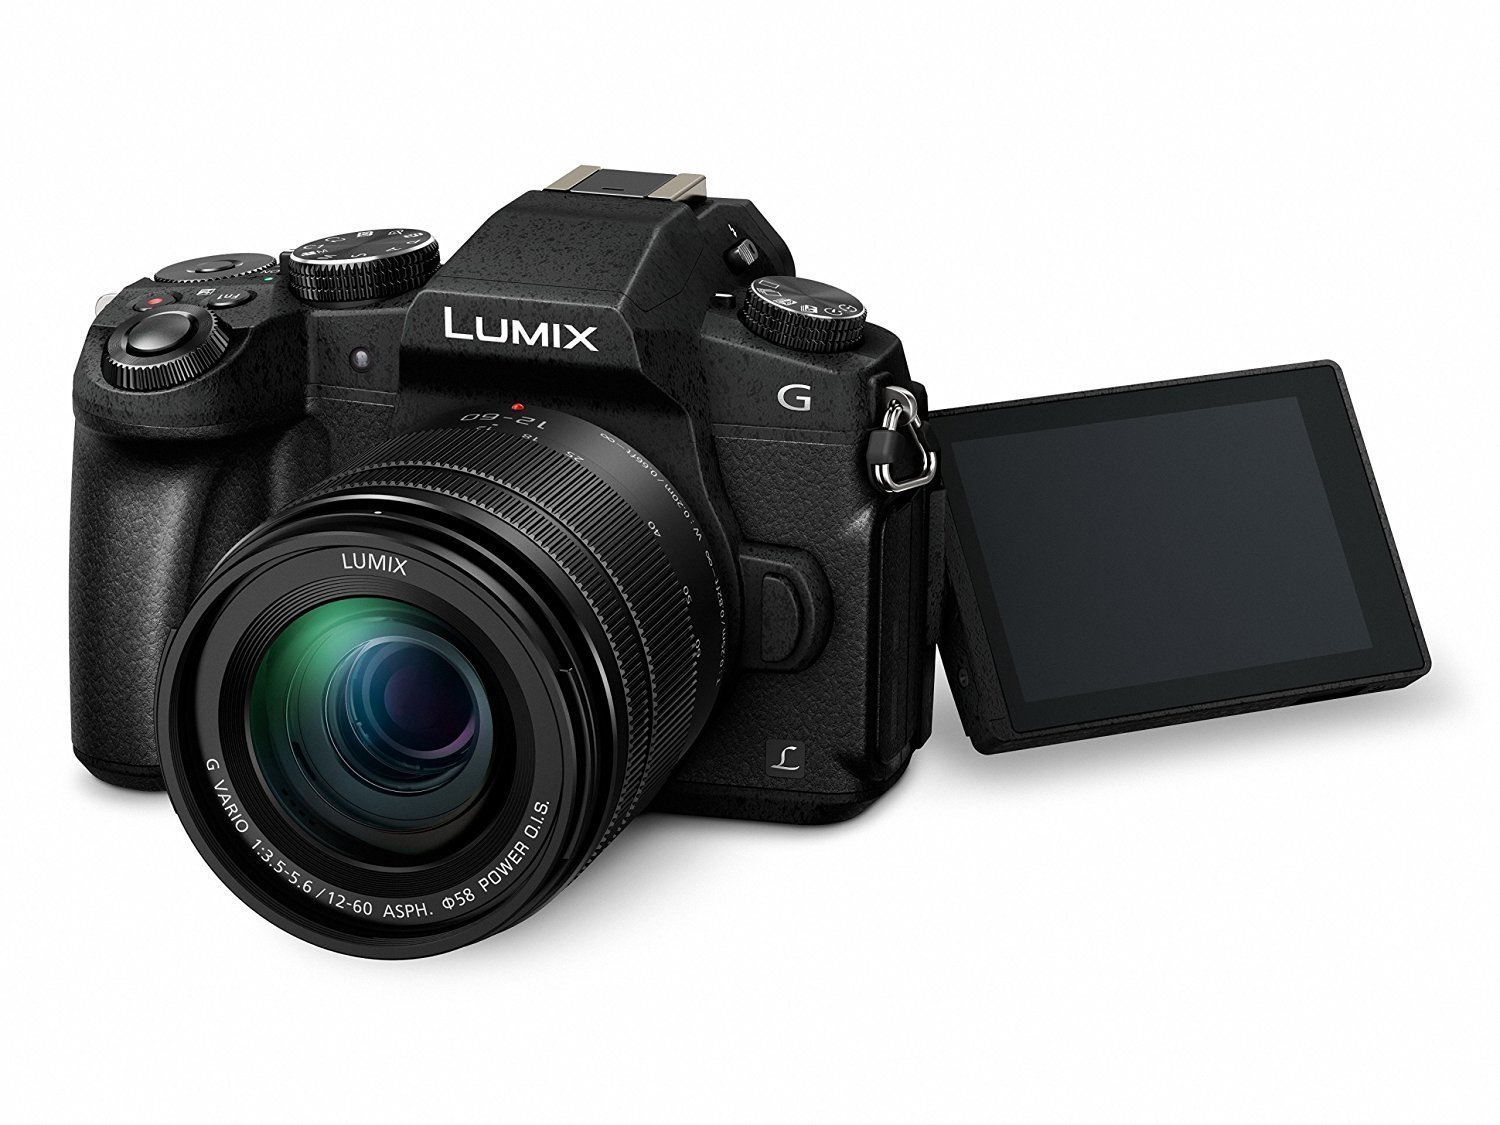 Panasonic Lumix G85  Photo 8 of 10 in The best cameras of 2016